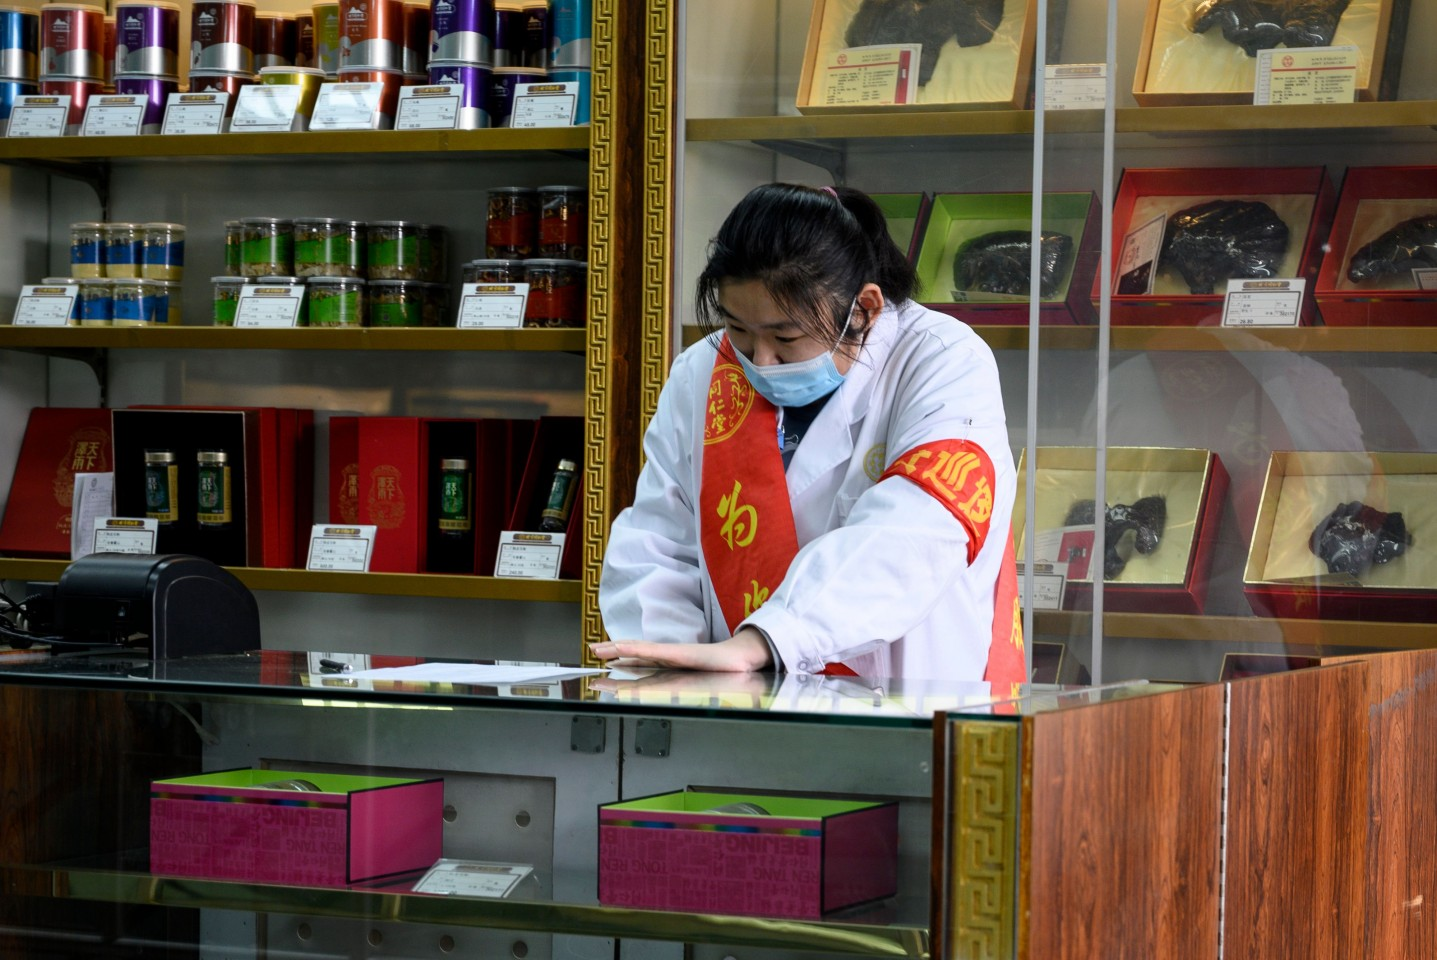 This photo taken on 1 February 2020 shows an employee wearing a protective face mask at a traditional Chinese medicine store in Beijing. (Noel Celis/AFP)